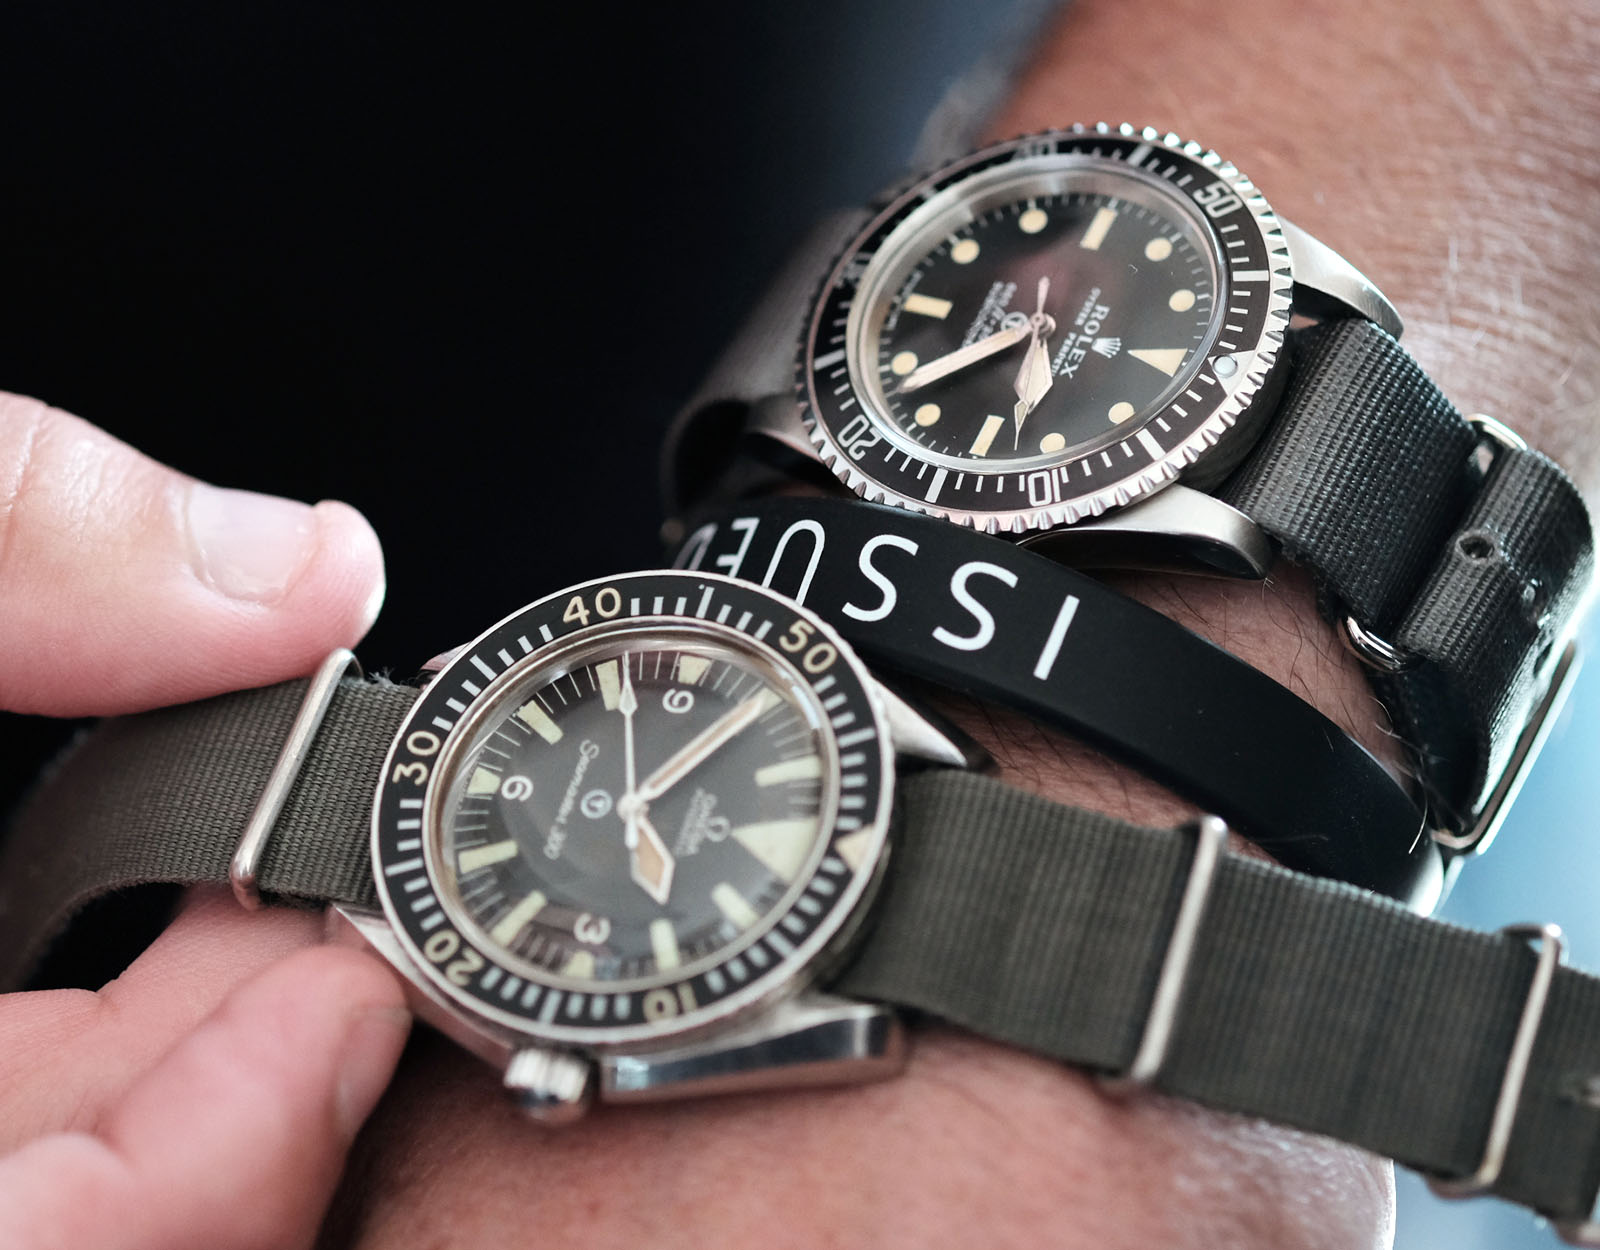 Issued 3 Meeting - A Celebration of Tool watches and Friendships